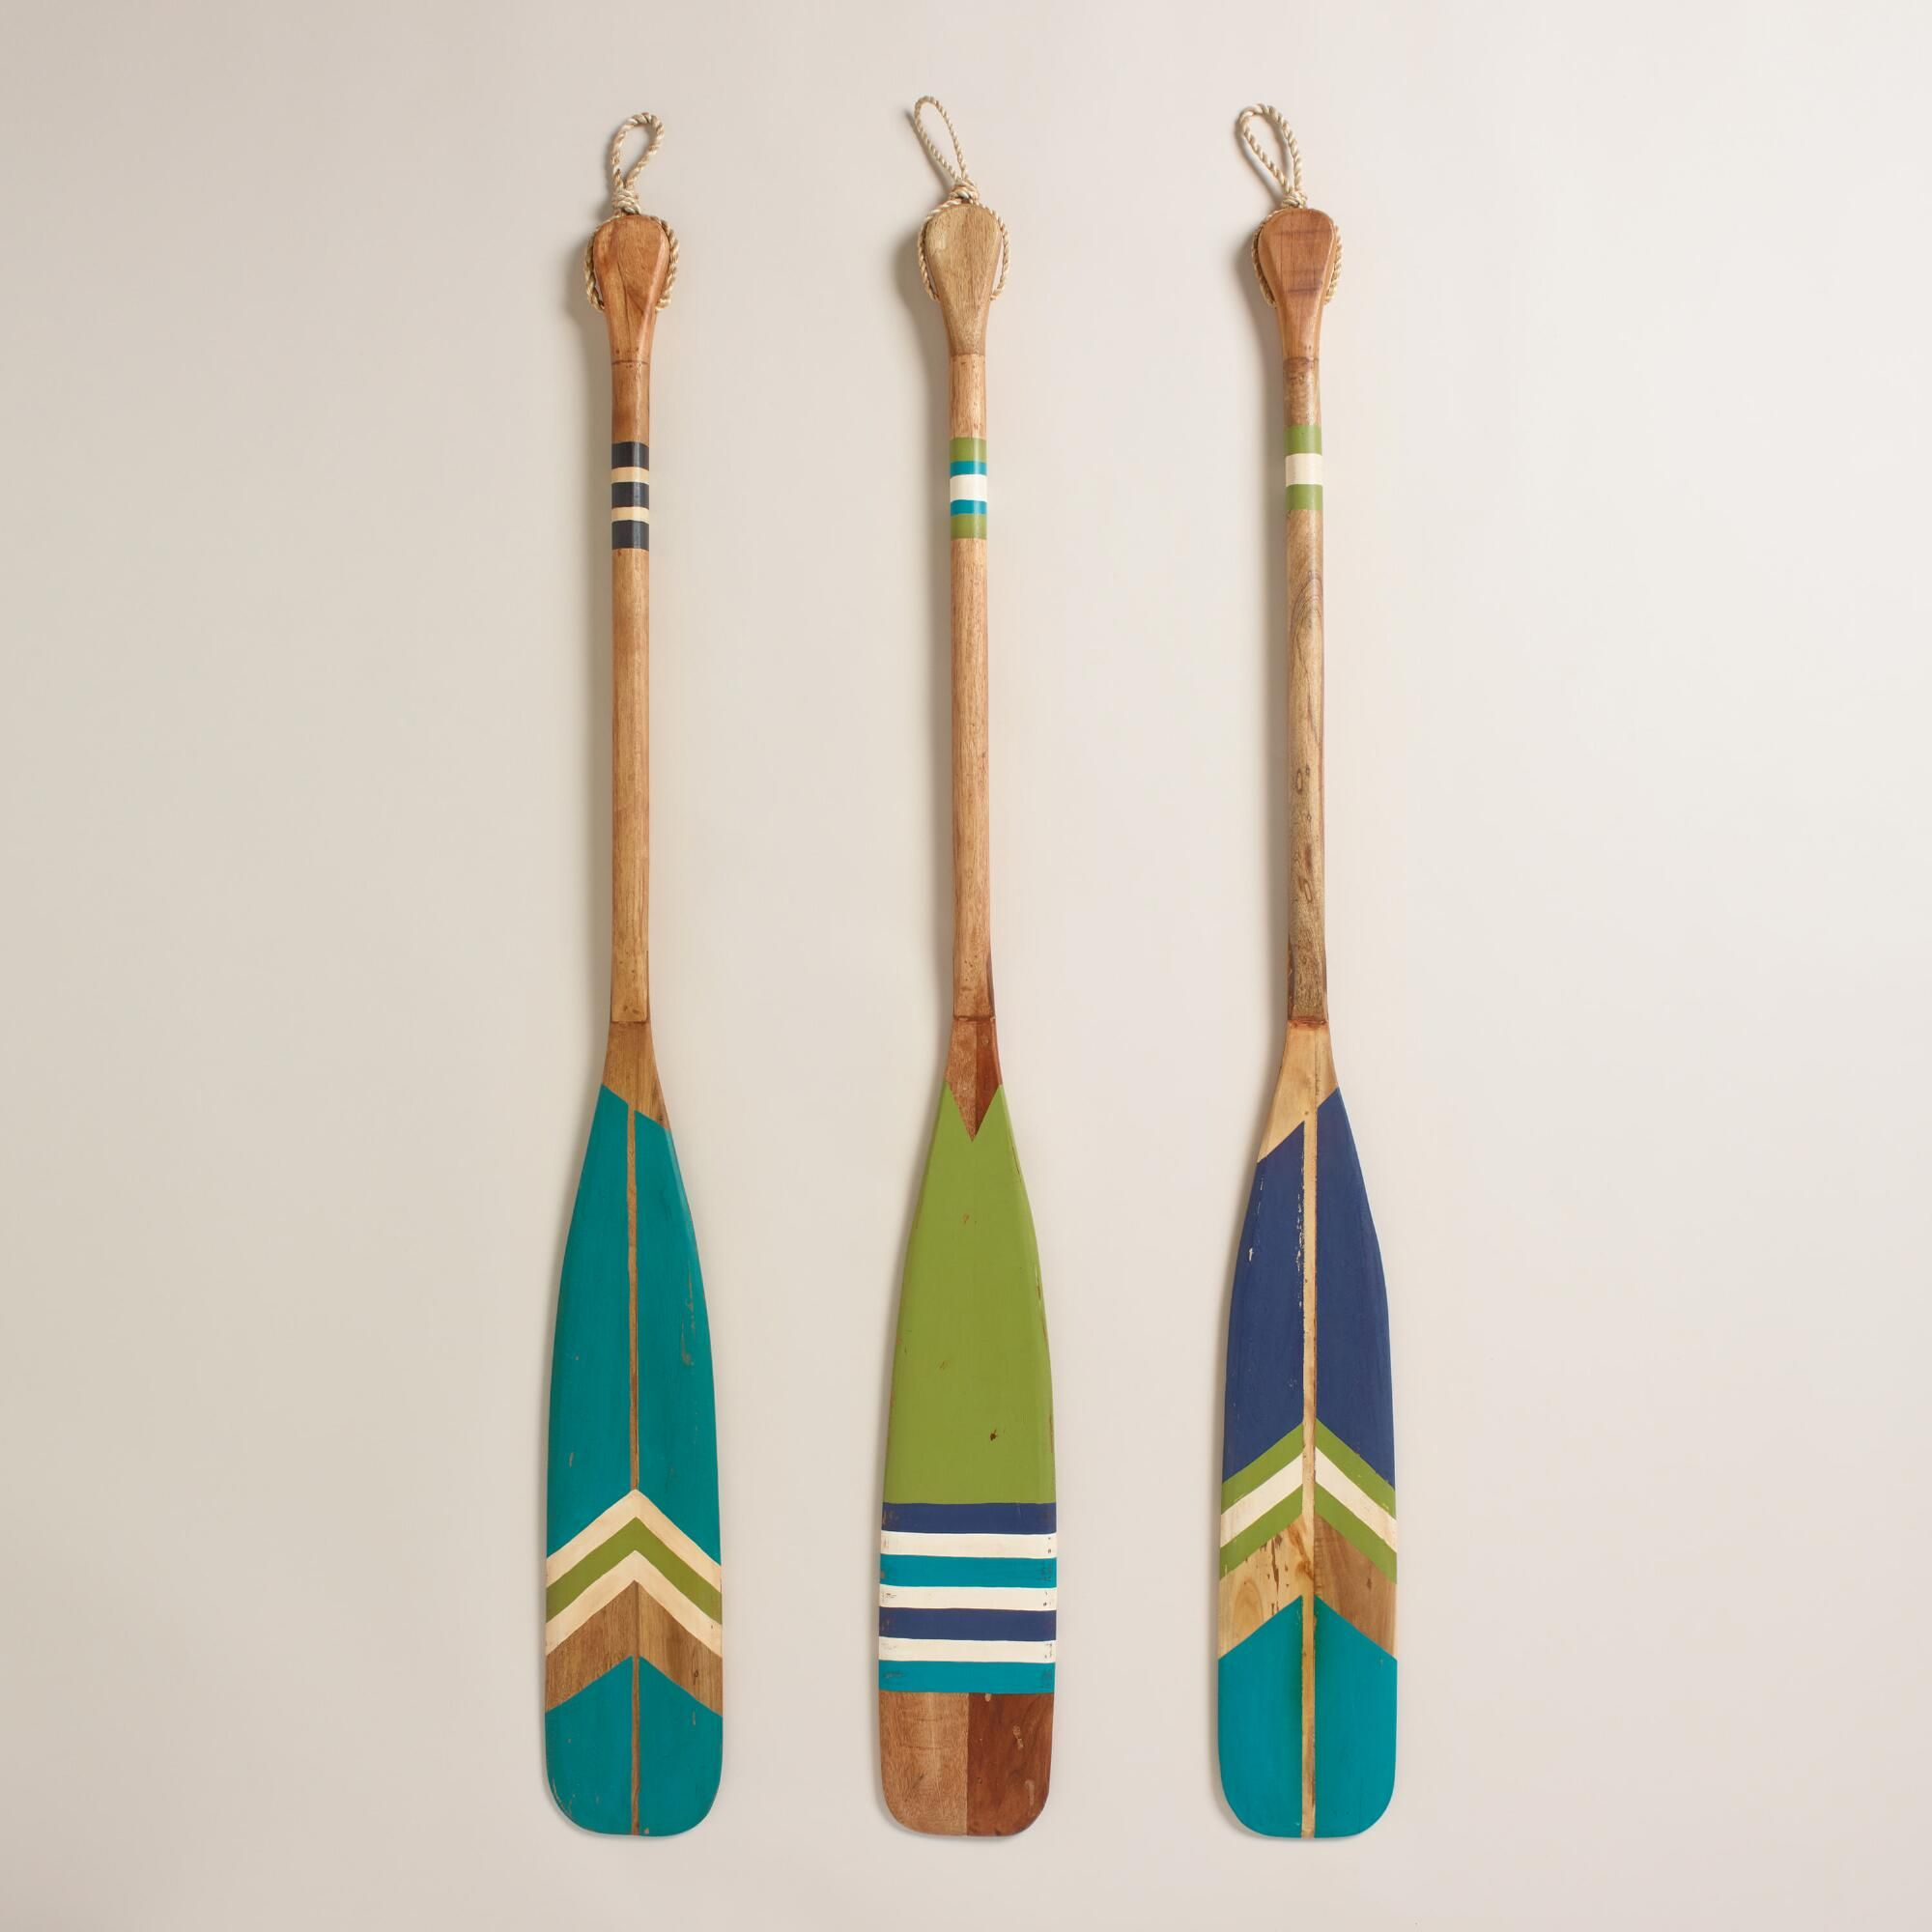 Nautical Wall Decor Oars: Navigate Your Way To Chic Nautical Style With Our Colorful